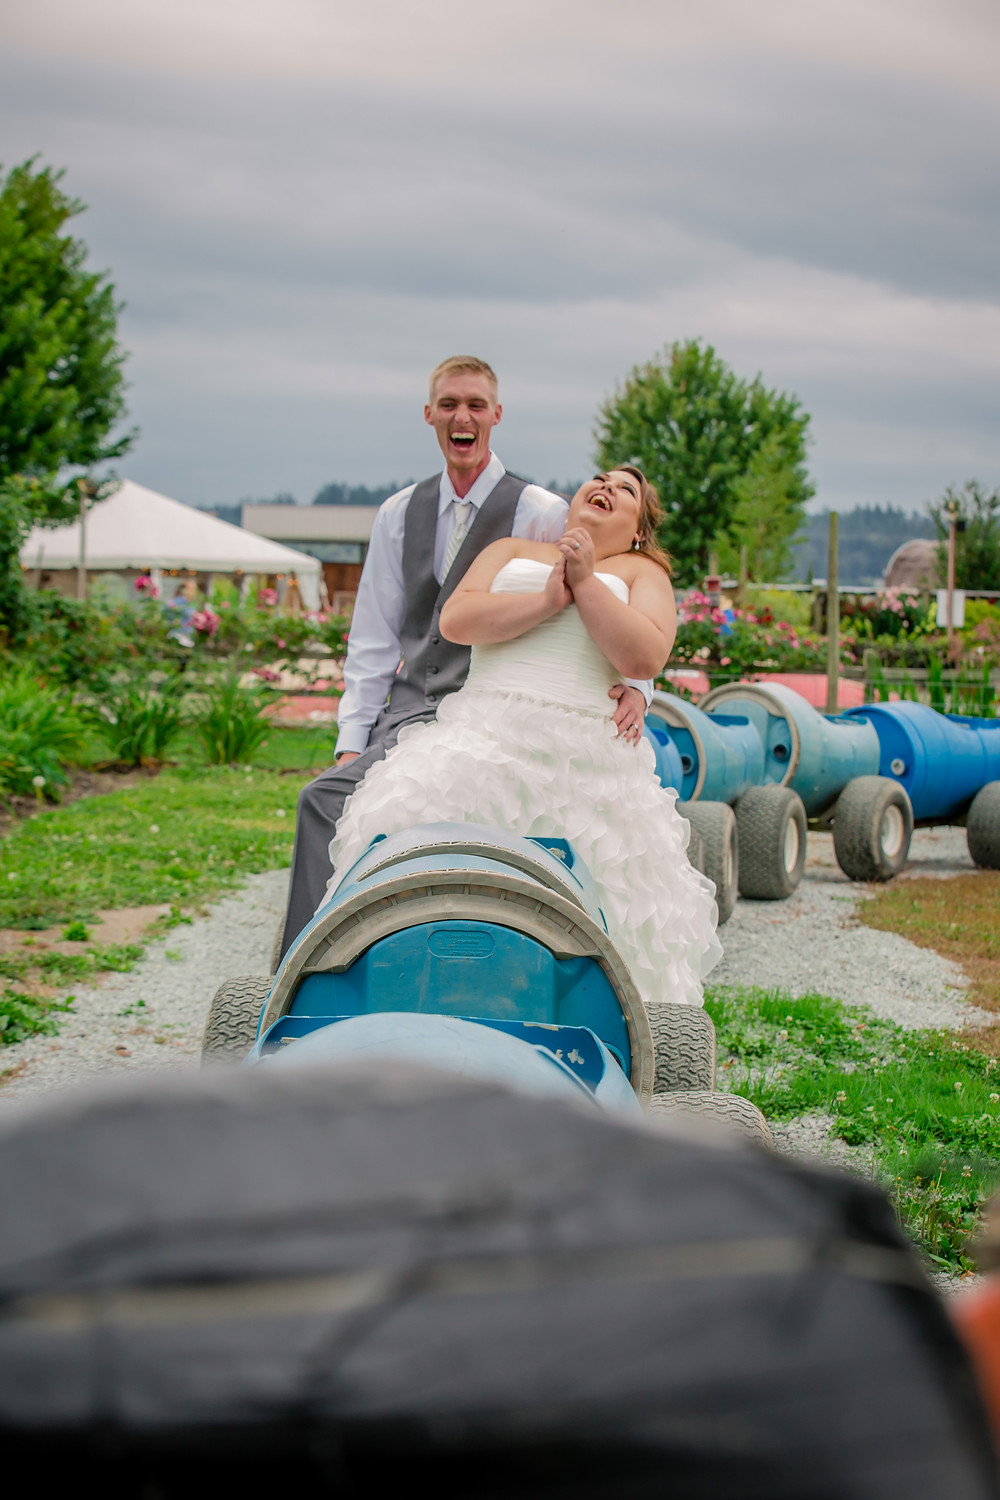 A bride and groom have fun before a wedding at the Red Barn at Stocker Farms in Snohomish, a wedding venue near Seattle, WA.